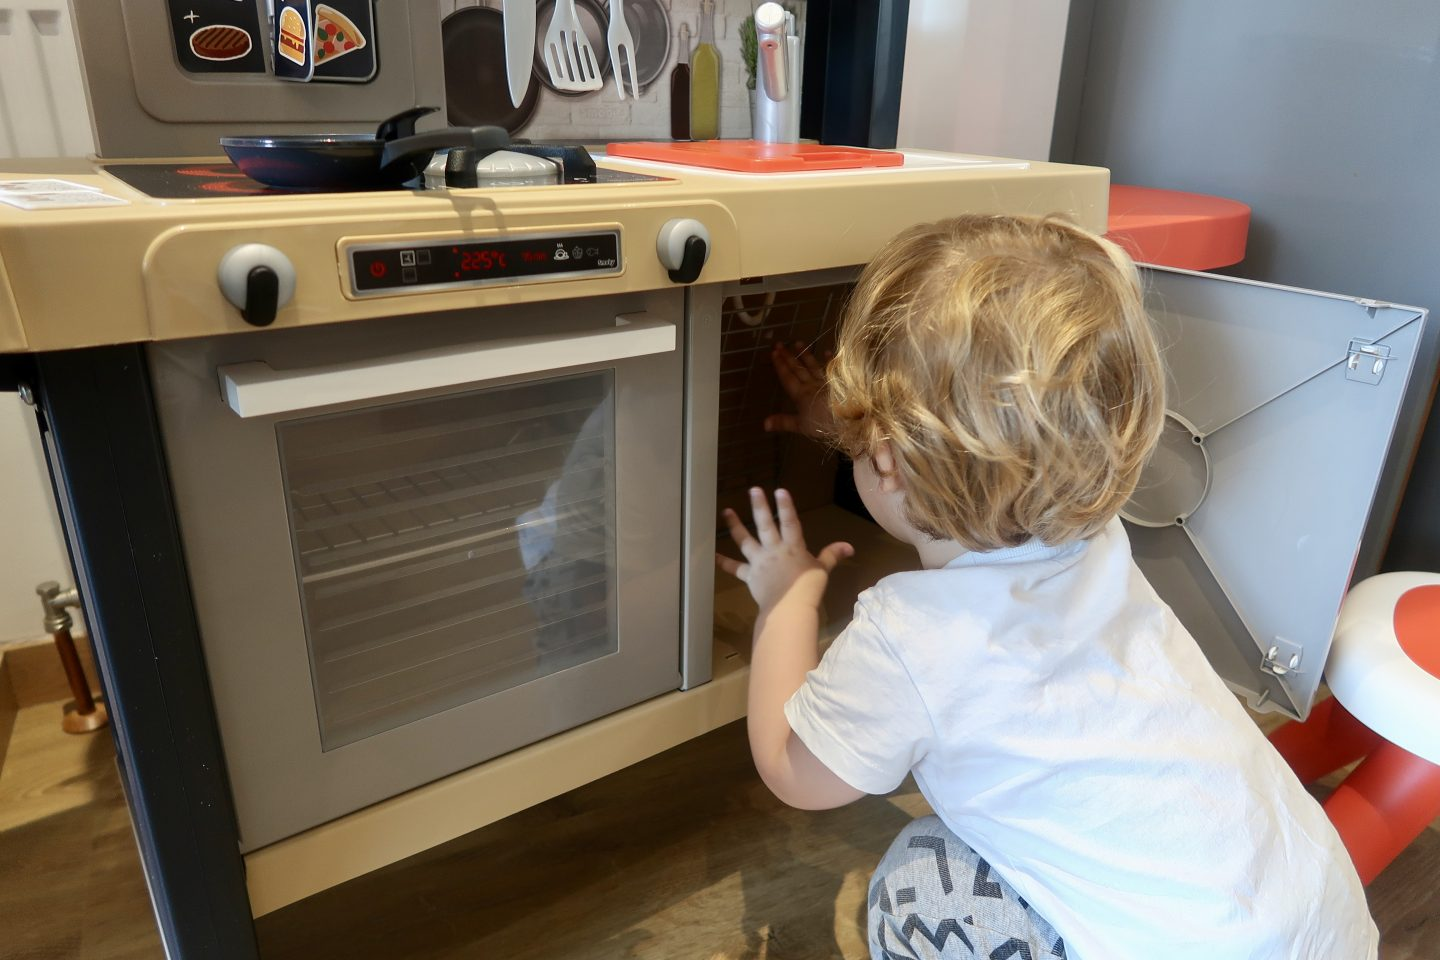 A boy reaching in to the fridge of a toy kitchen